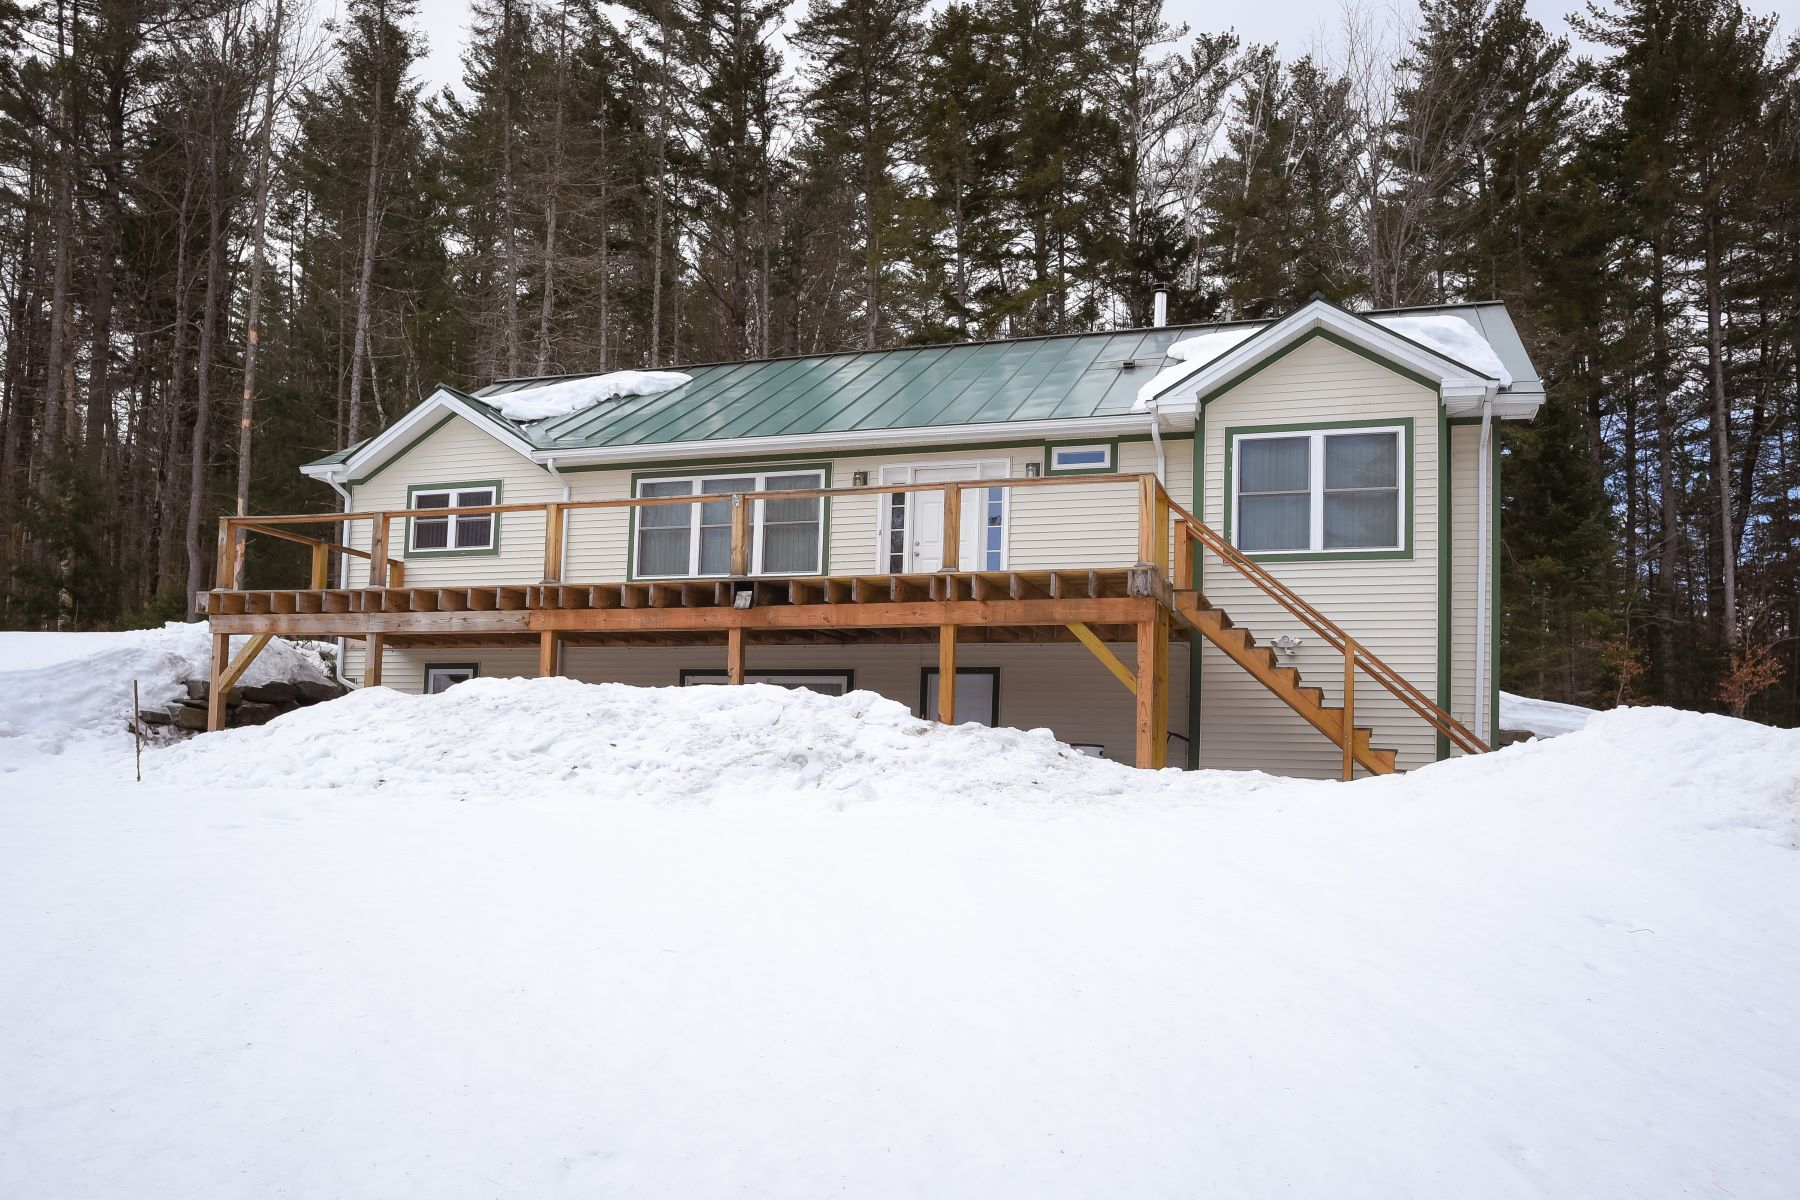 Single Family Home for Sale at Four Bedroom Ranch in Corinth 2055 Brook Rd Corinth, Vermont 05039 United States